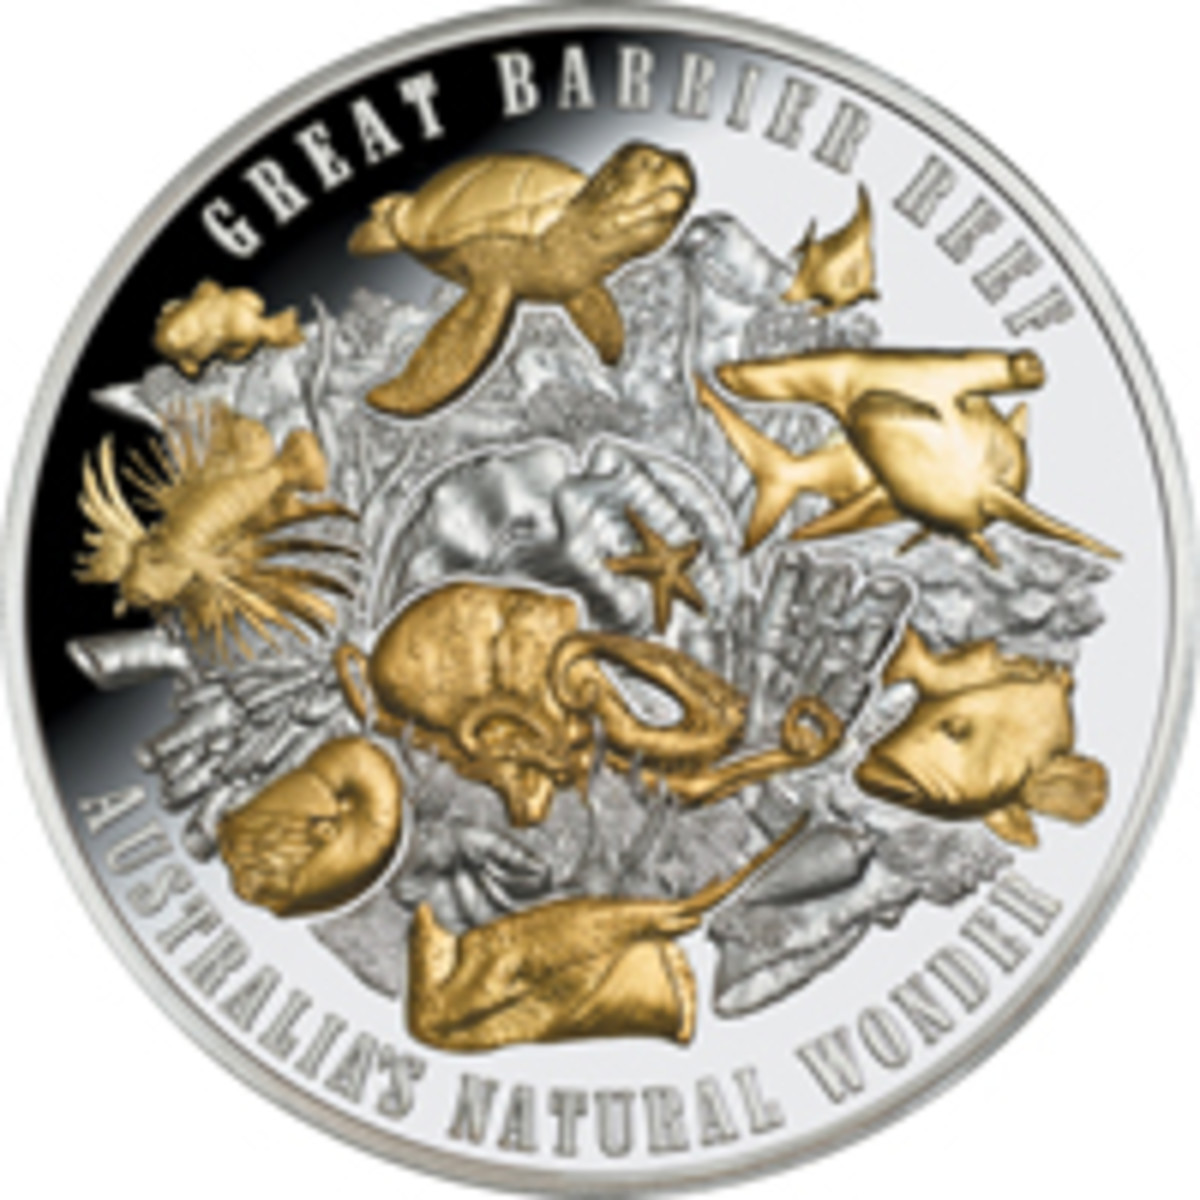 Reverse of Niue's spectacular 65 mm, 5 oz silver high-relief $10 that celebrates the Great Barrier Reef. (Image courtesy Downies)